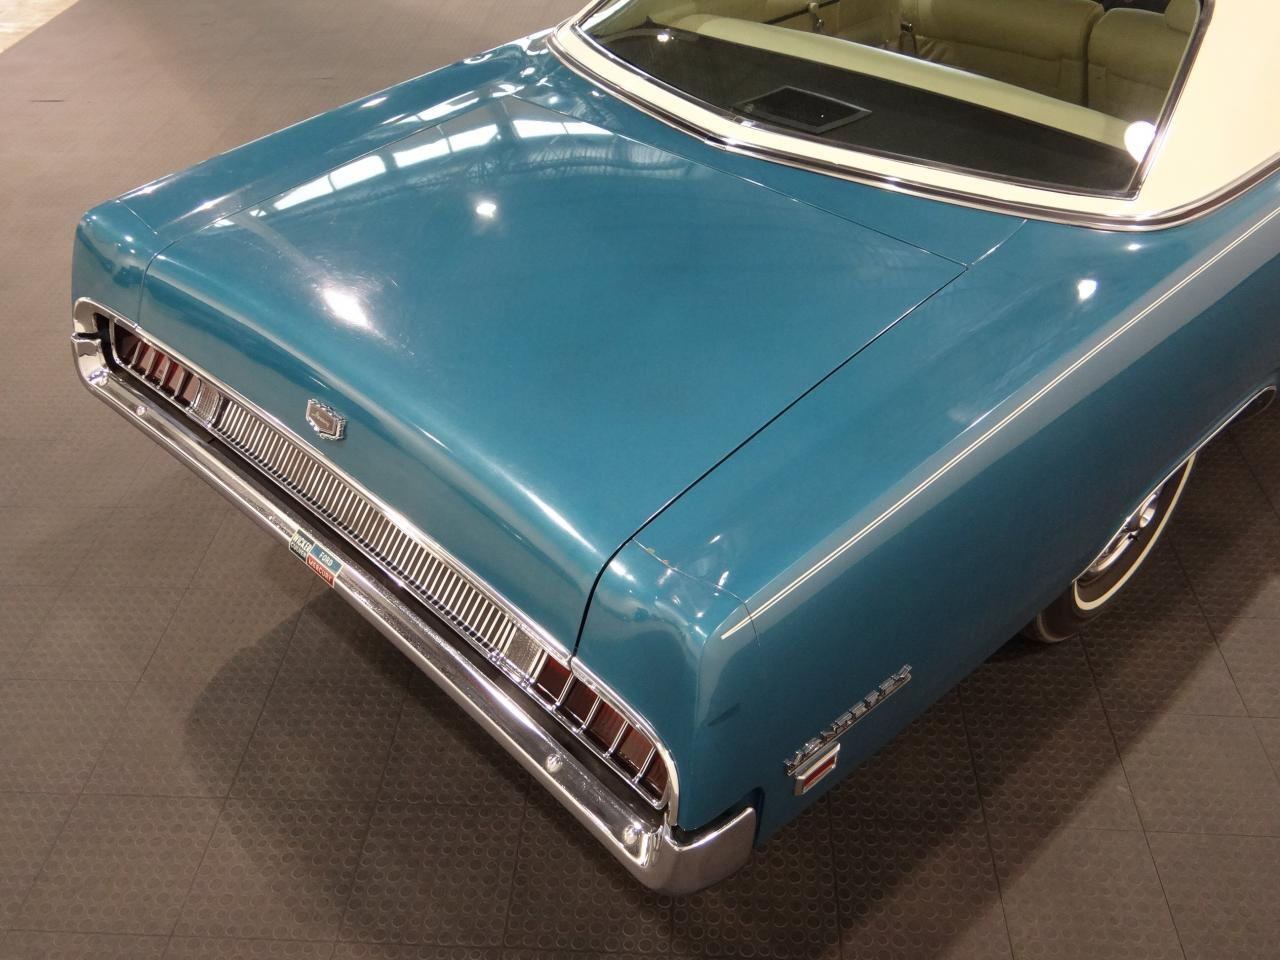 Large Picture of Classic '69 Mercury Monterey located in Indianapolis Indiana - $17,995.00 Offered by Gateway Classic Cars - Indianapolis - KECC